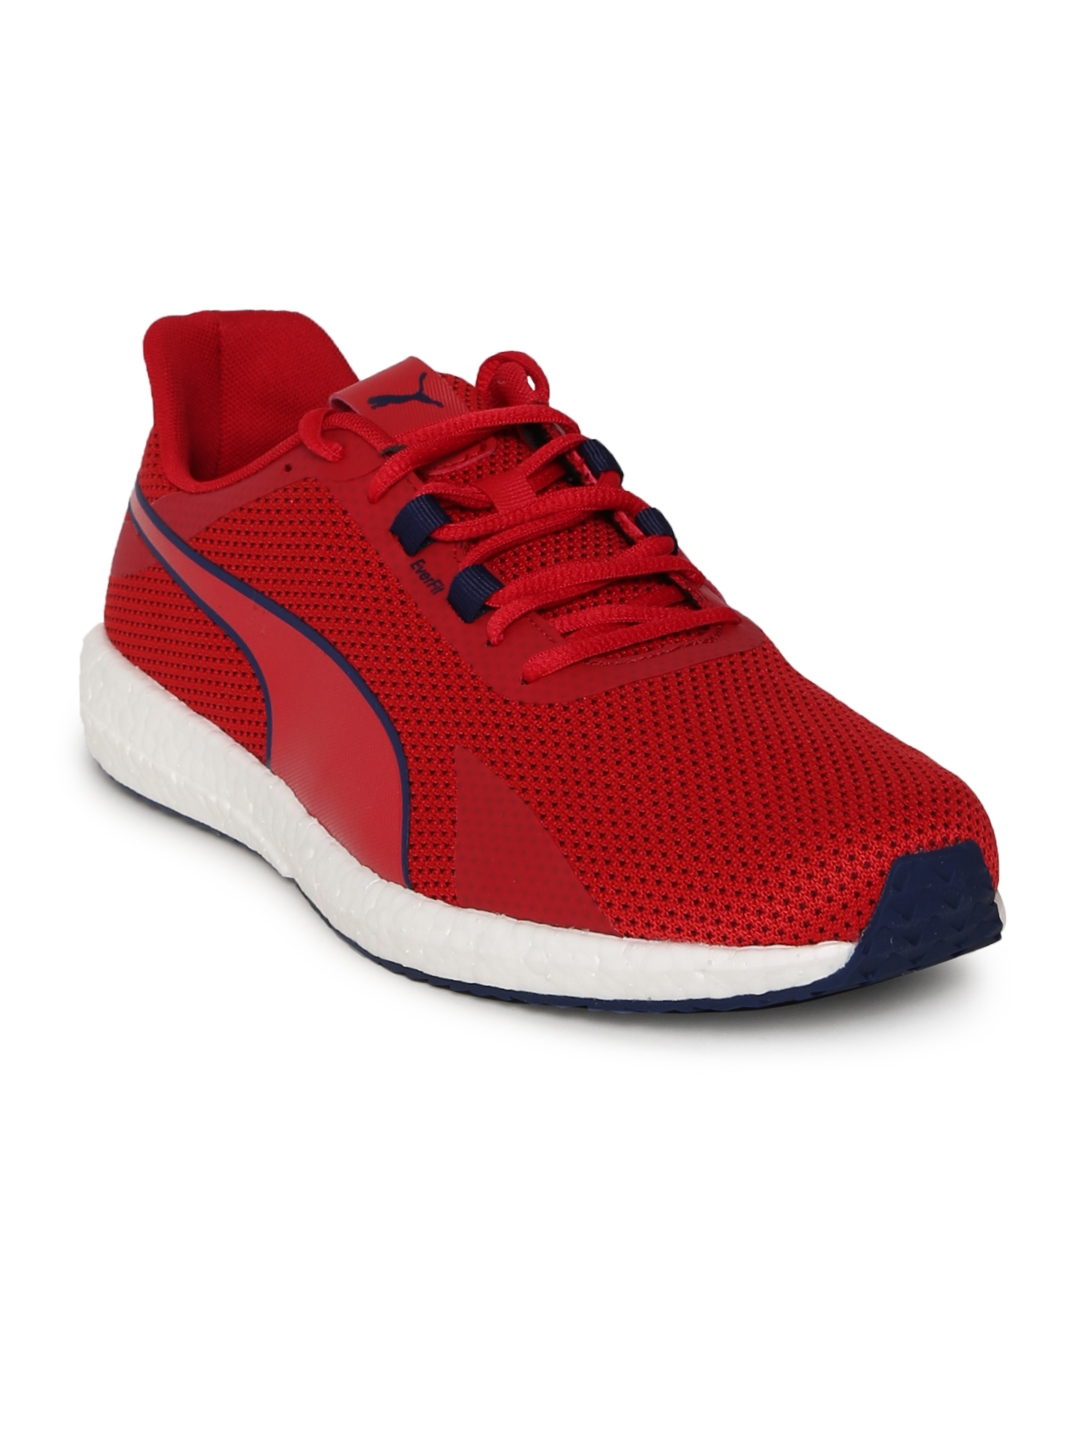 27be52c2e023cf Buy Puma Men Red Mega NRGY Turbo Running Shoes - Sports Shoes for ...